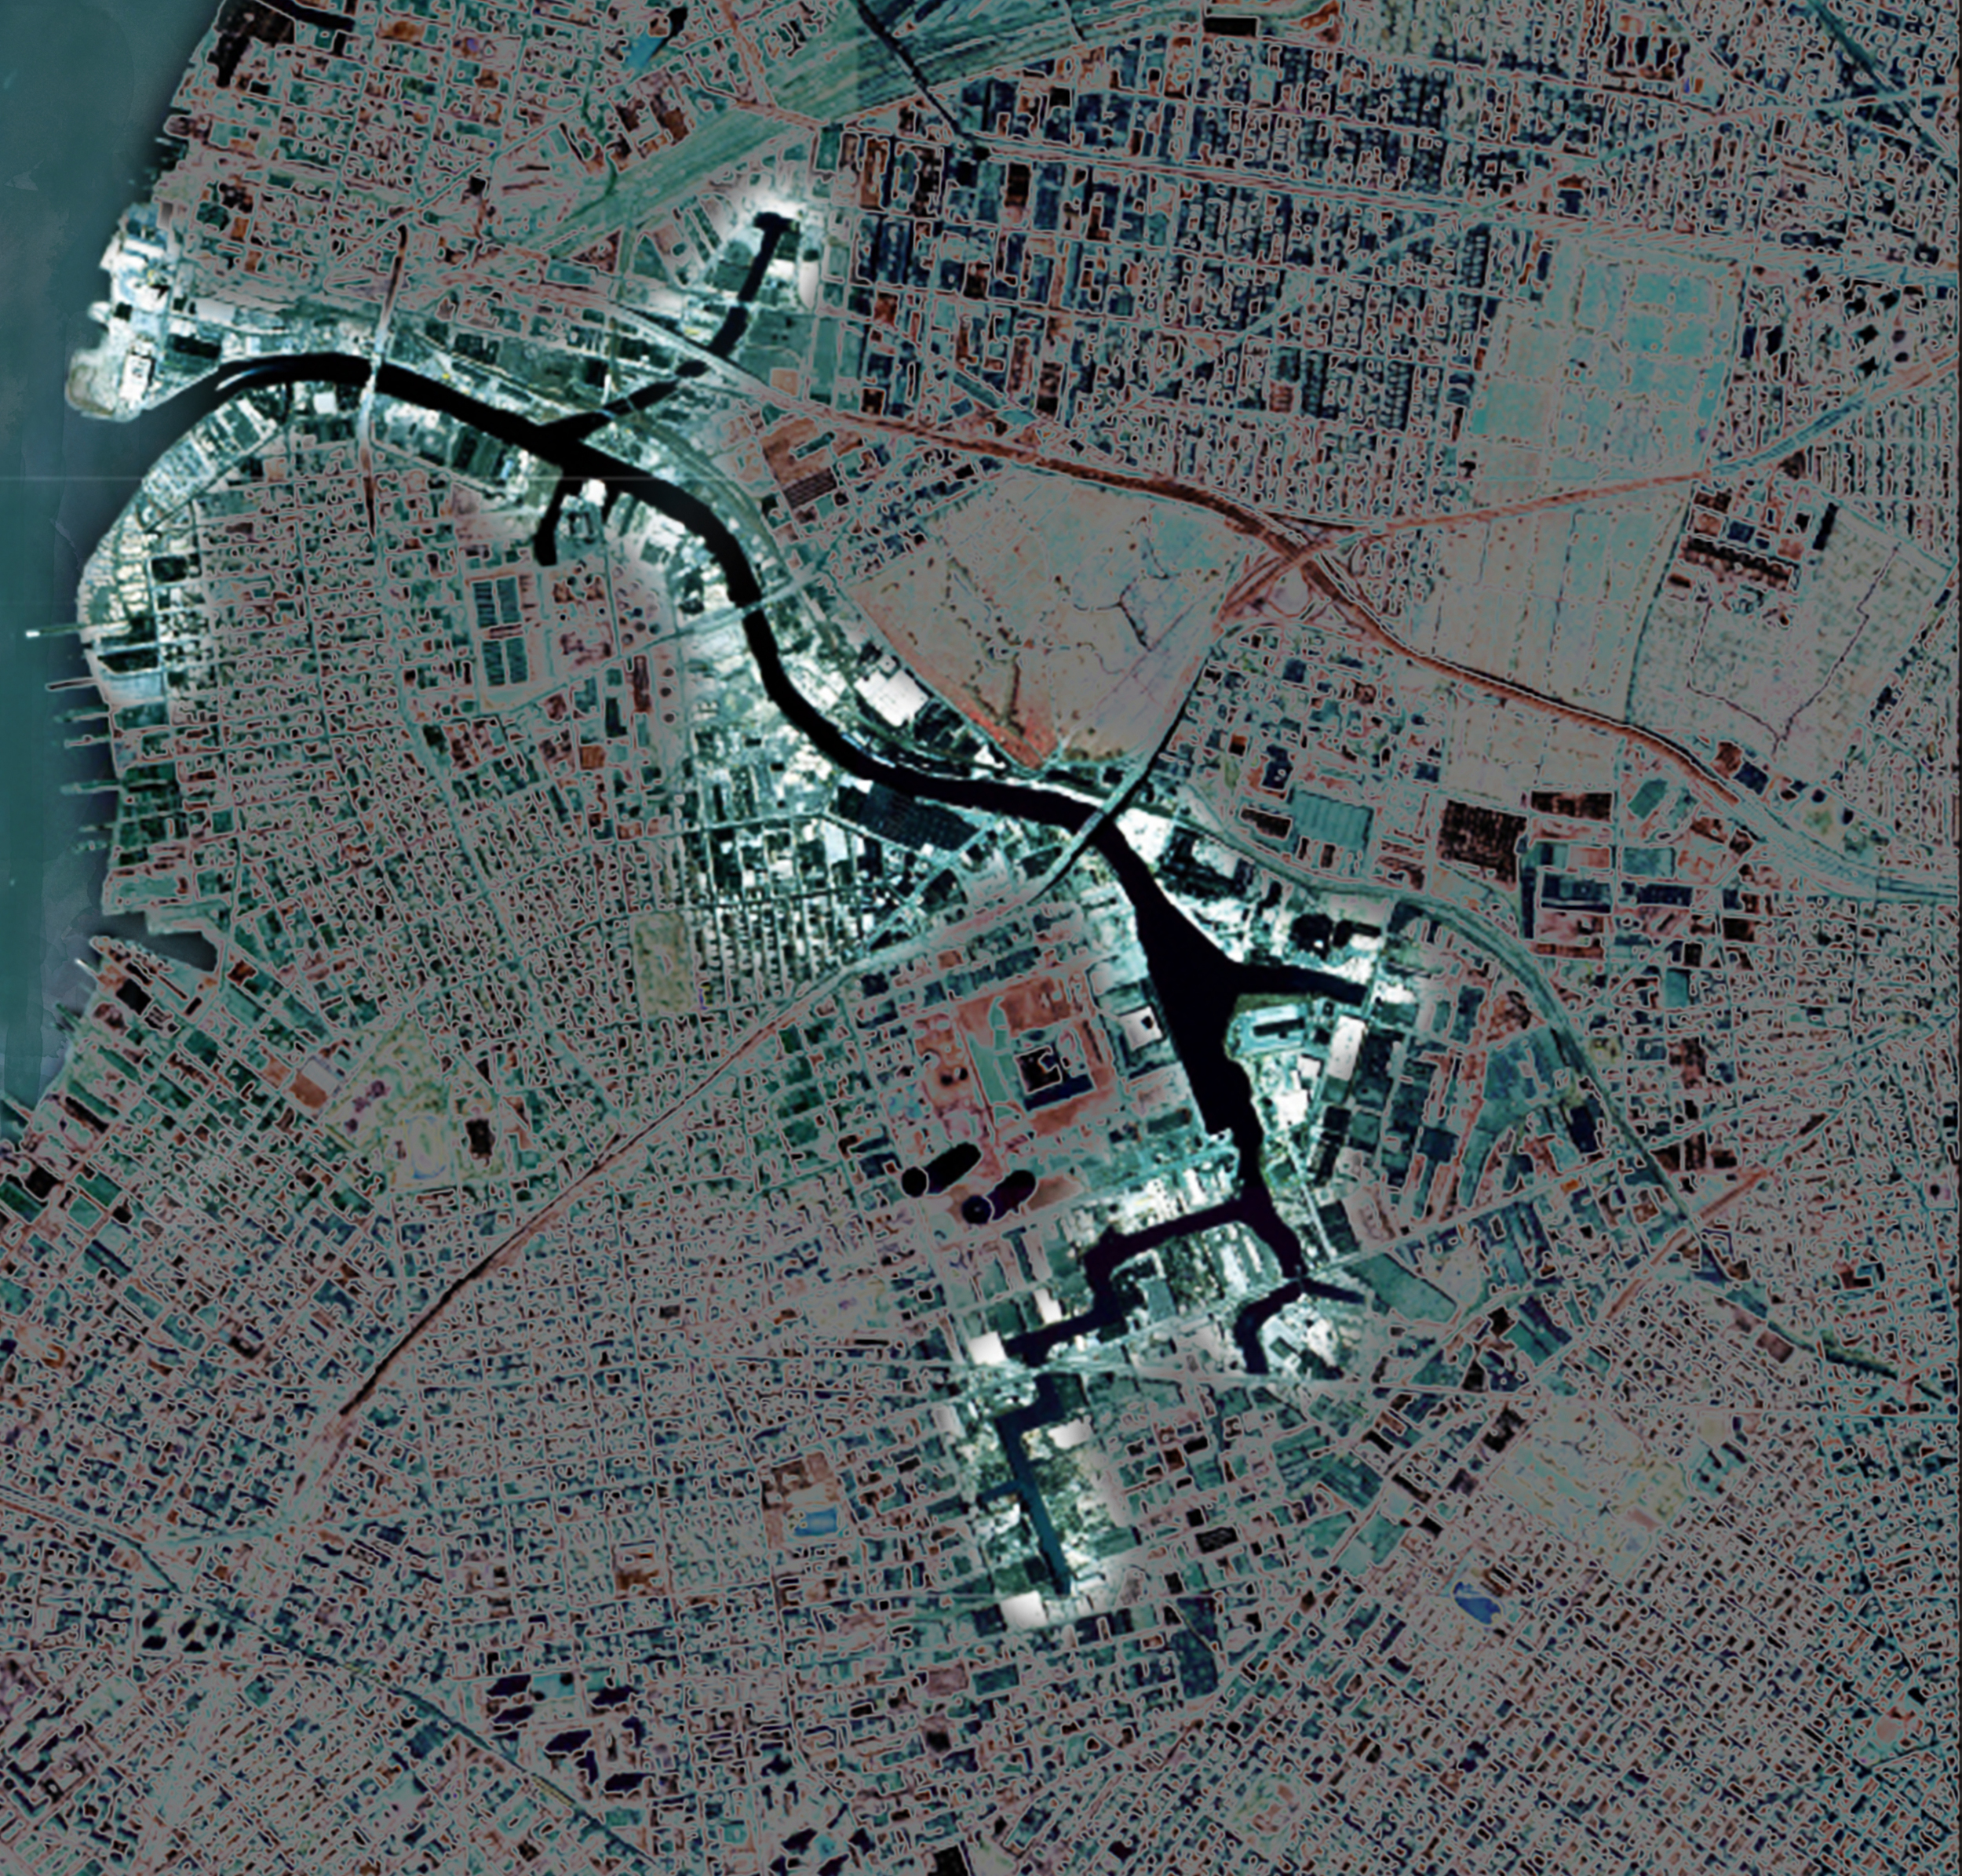 Early draft of context ideas_image of surrounding urban context